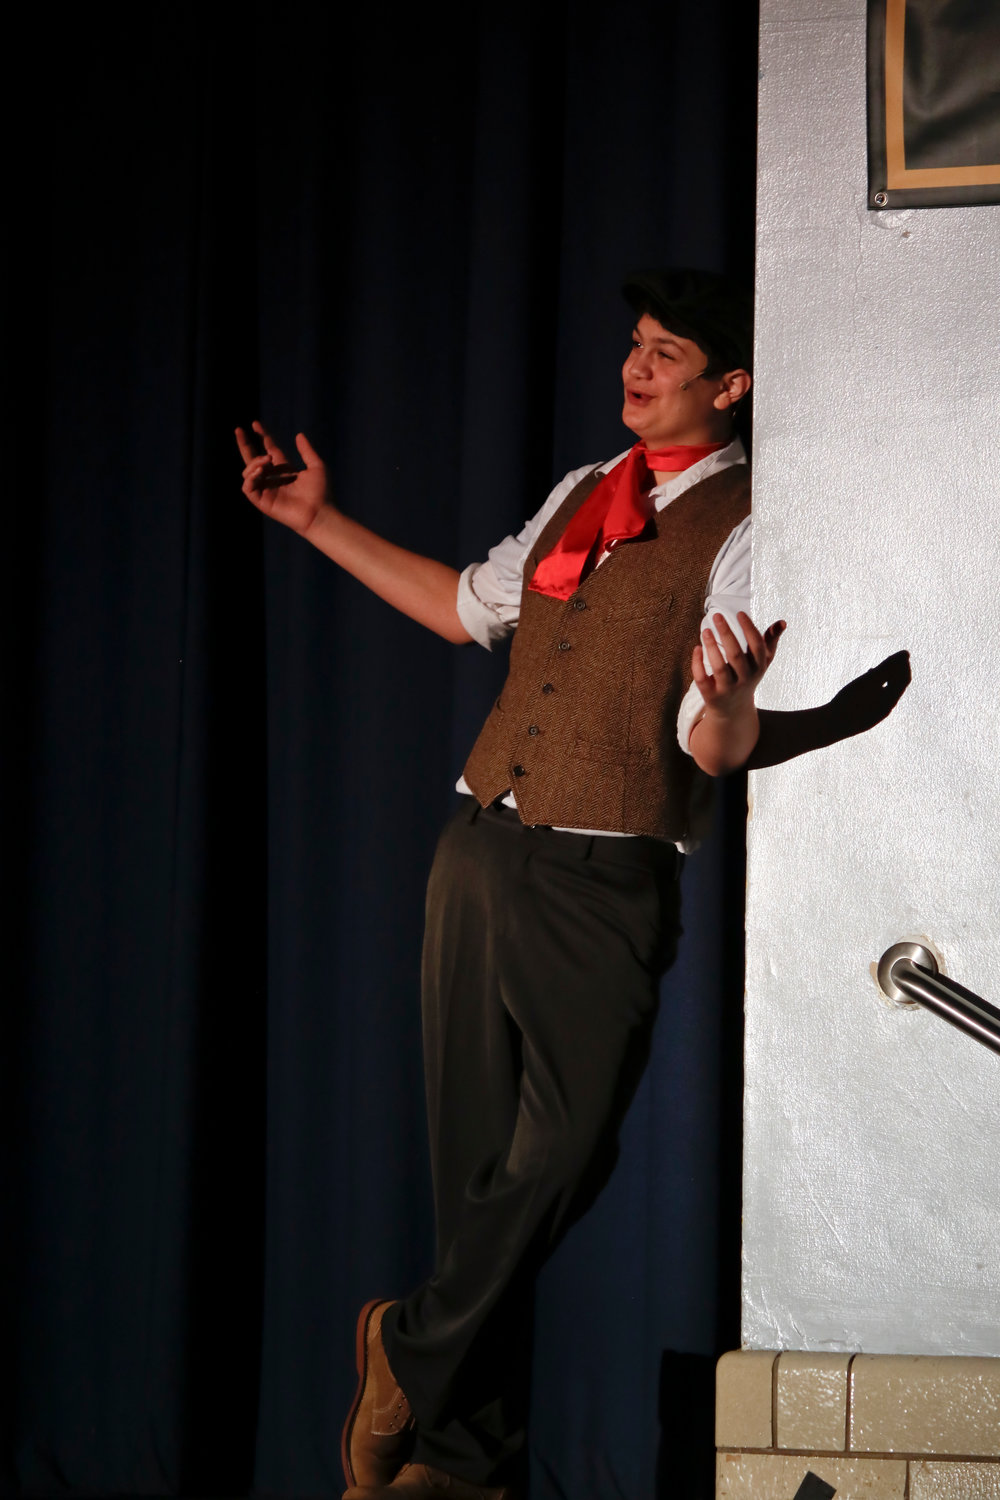 Chim chimney, chim chimney, chim chim cher-ee, sang Bert, played by Jake Truncale.